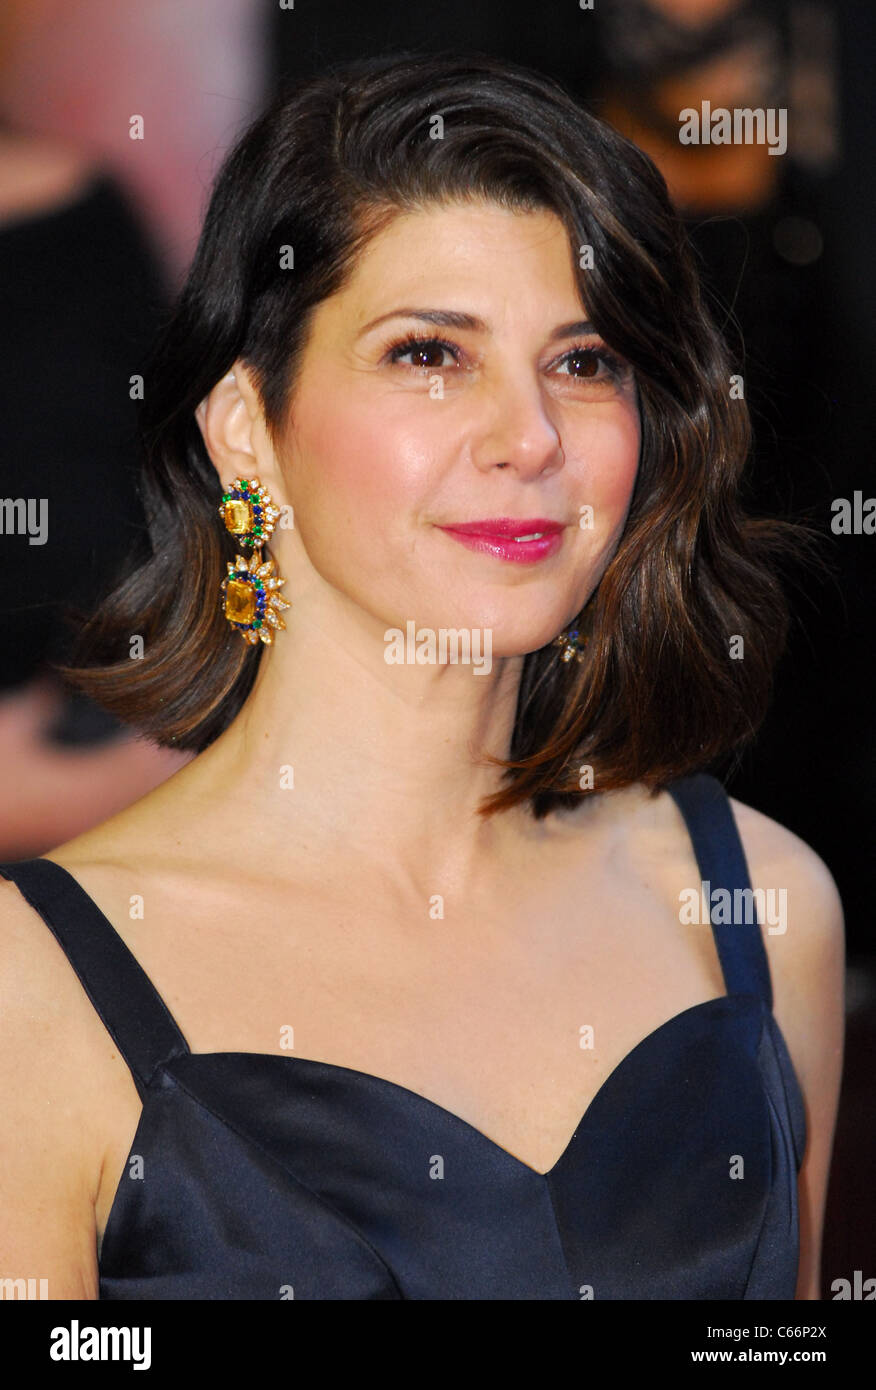 Marisa Tomei at arrivals for The 83rd Academy Awards Oscars - Arrivals Part 2, The Kodak Theatre, Los Angeles, CA - Stock Image